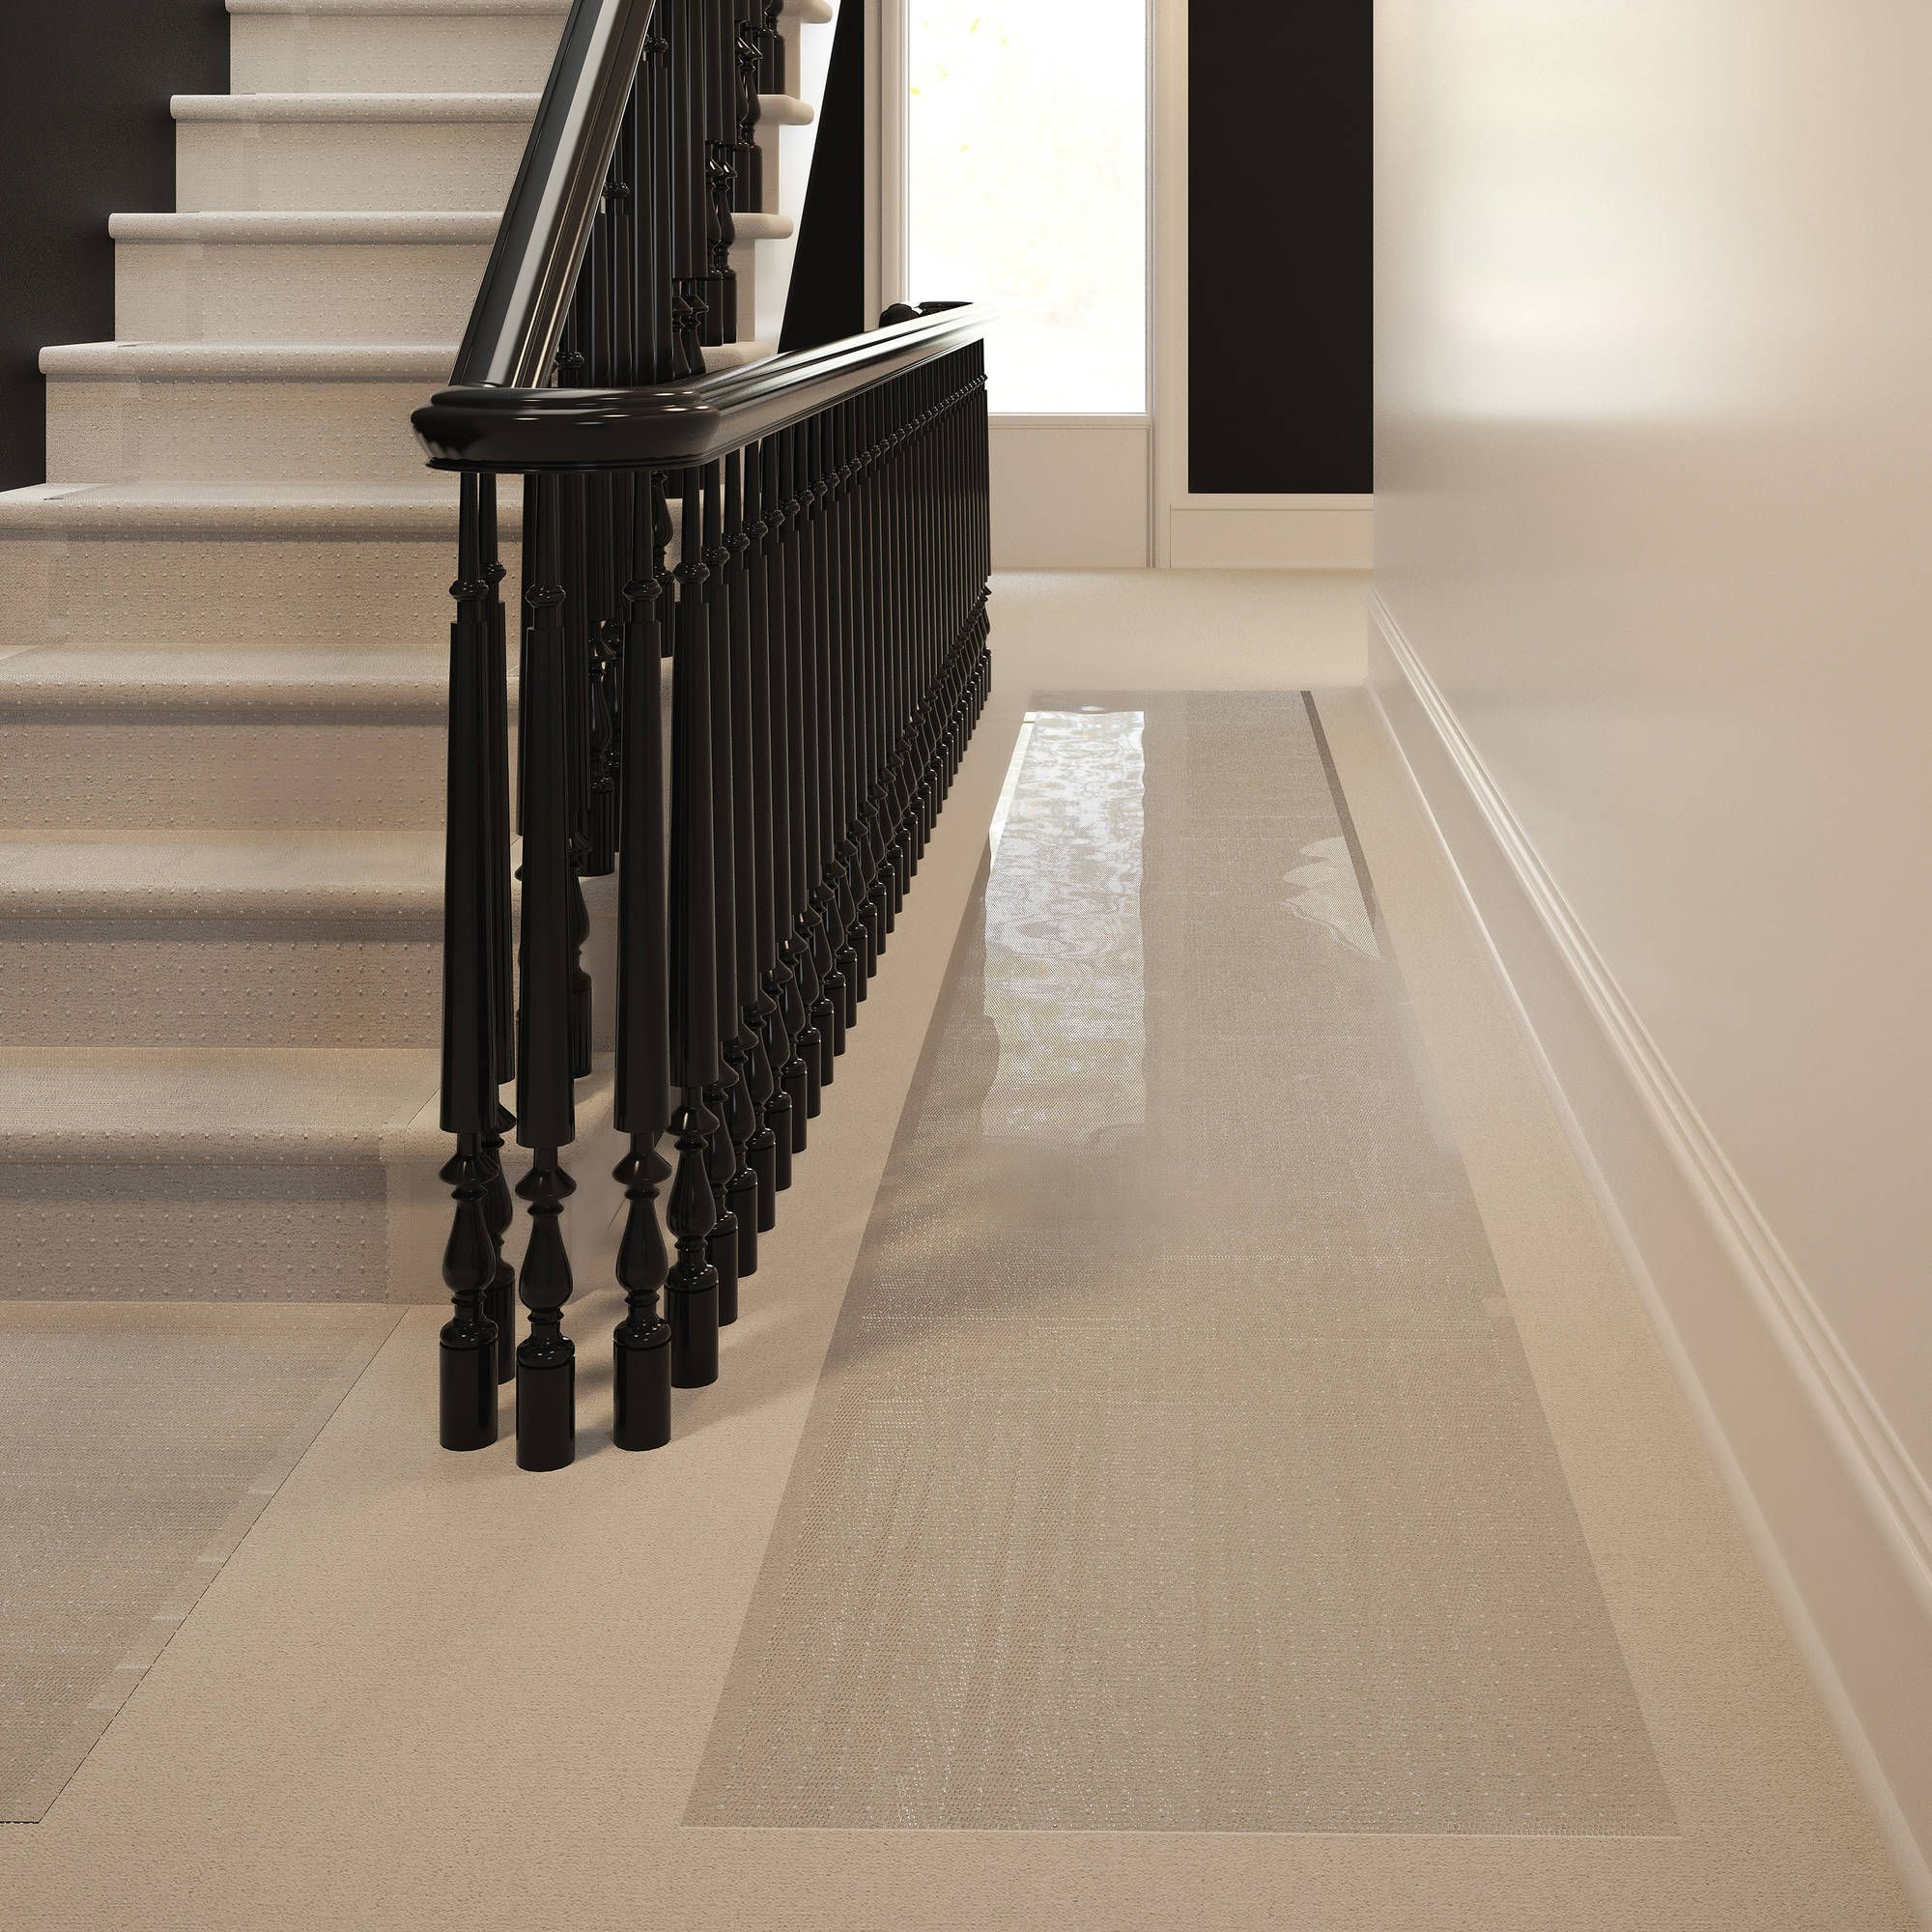 Hallway carpet runners sold by the foot  Image result for carpet runner  HALLWAY  Pinterest